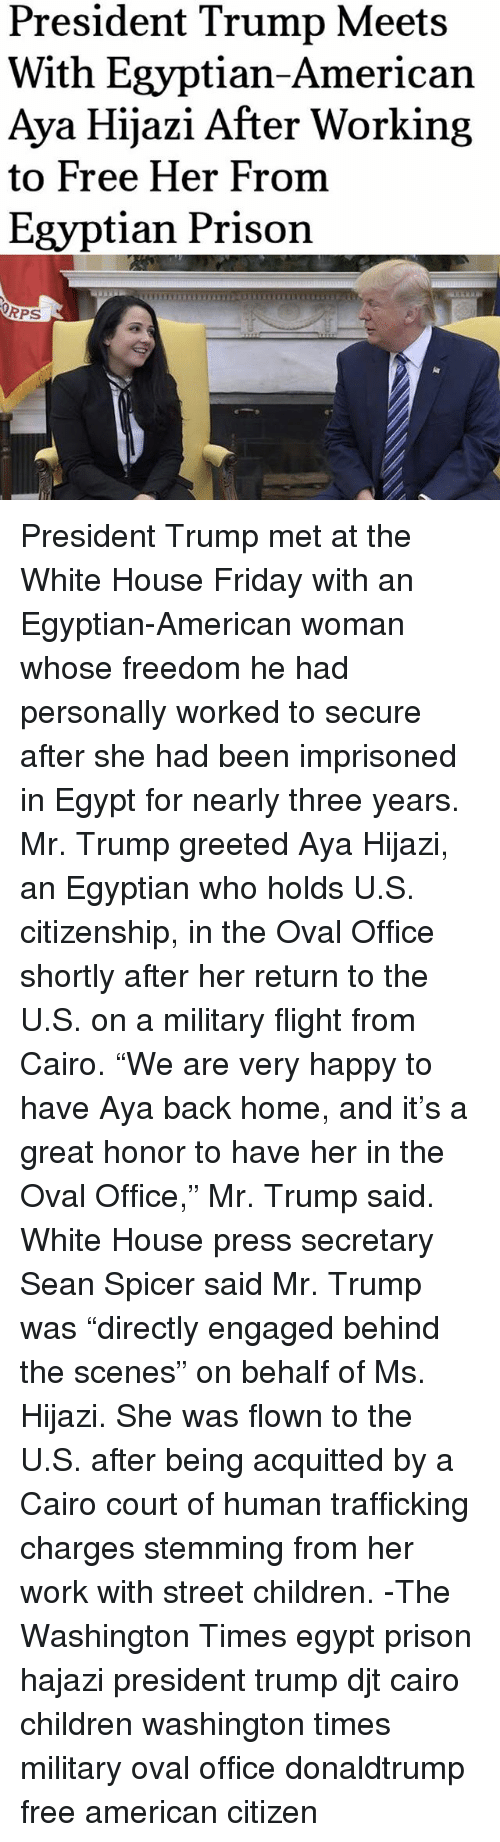 """Children, Friday, and Memes: President Trump Meets  With Egyptian-American  Aya Hijazi After Working  to Free Her From  Egyptian Prison  ORPS President Trump met at the White House Friday with an Egyptian-American woman whose freedom he had personally worked to secure after she had been imprisoned in Egypt for nearly three years. Mr. Trump greeted Aya Hijazi, an Egyptian who holds U.S. citizenship, in the Oval Office shortly after her return to the U.S. on a military flight from Cairo. """"We are very happy to have Aya back home, and it's a great honor to have her in the Oval Office,"""" Mr. Trump said. White House press secretary Sean Spicer said Mr. Trump was """"directly engaged behind the scenes"""" on behalf of Ms. Hijazi. She was flown to the U.S. after being acquitted by a Cairo court of human trafficking charges stemming from her work with street children. -The Washington Times egypt prison hajazi president trump djt cairo children washington times military oval office donaldtrump free american citizen"""